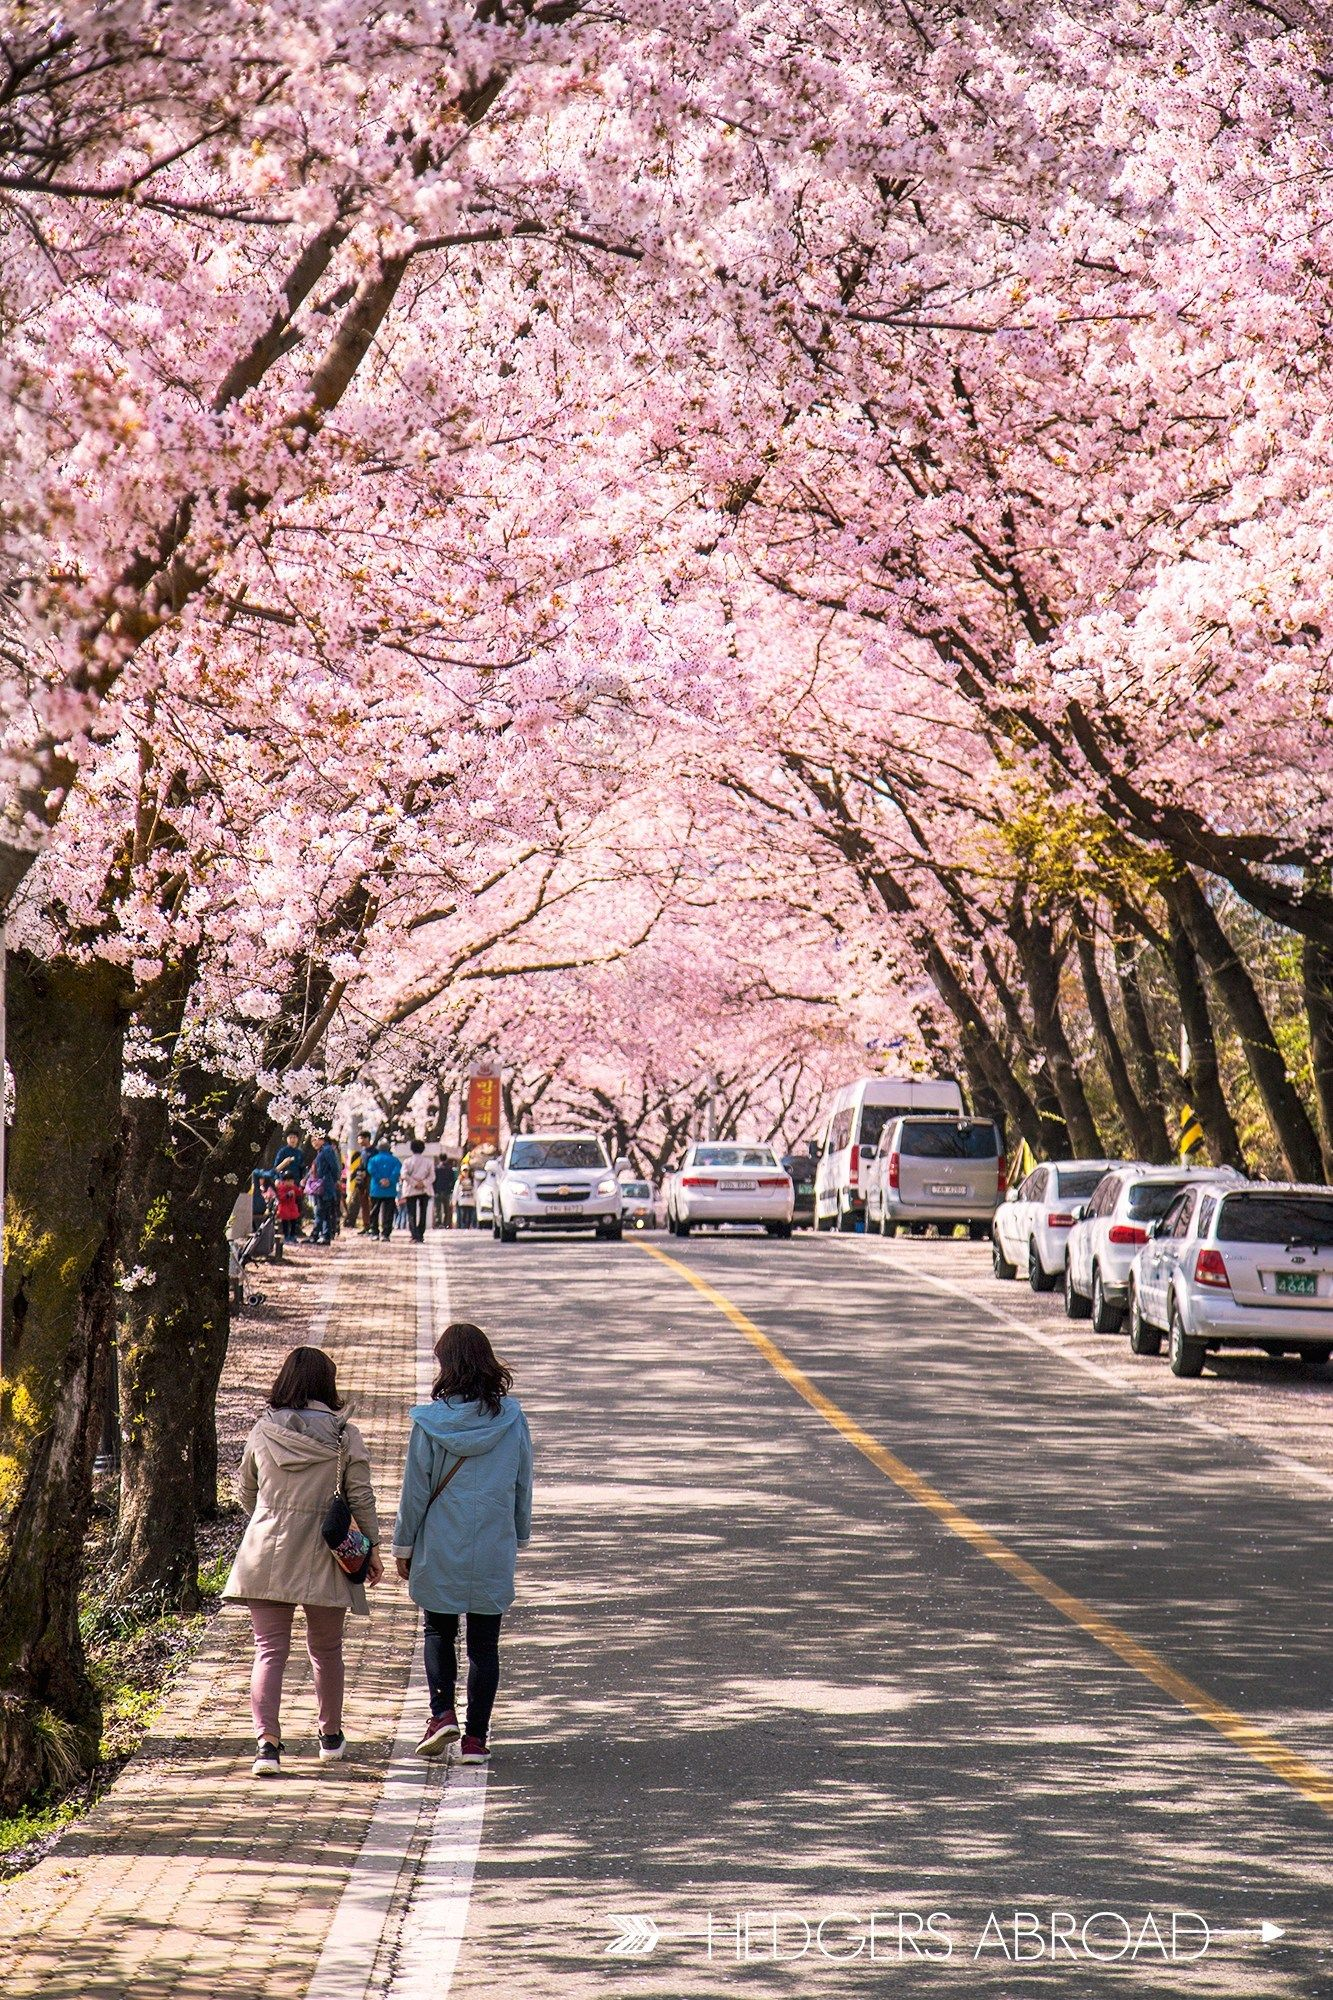 How To See The Hwagae Cherry Blossom Festival Hedgers Abroad South Korea Photography Seoul Korea Travel South Korea Travel